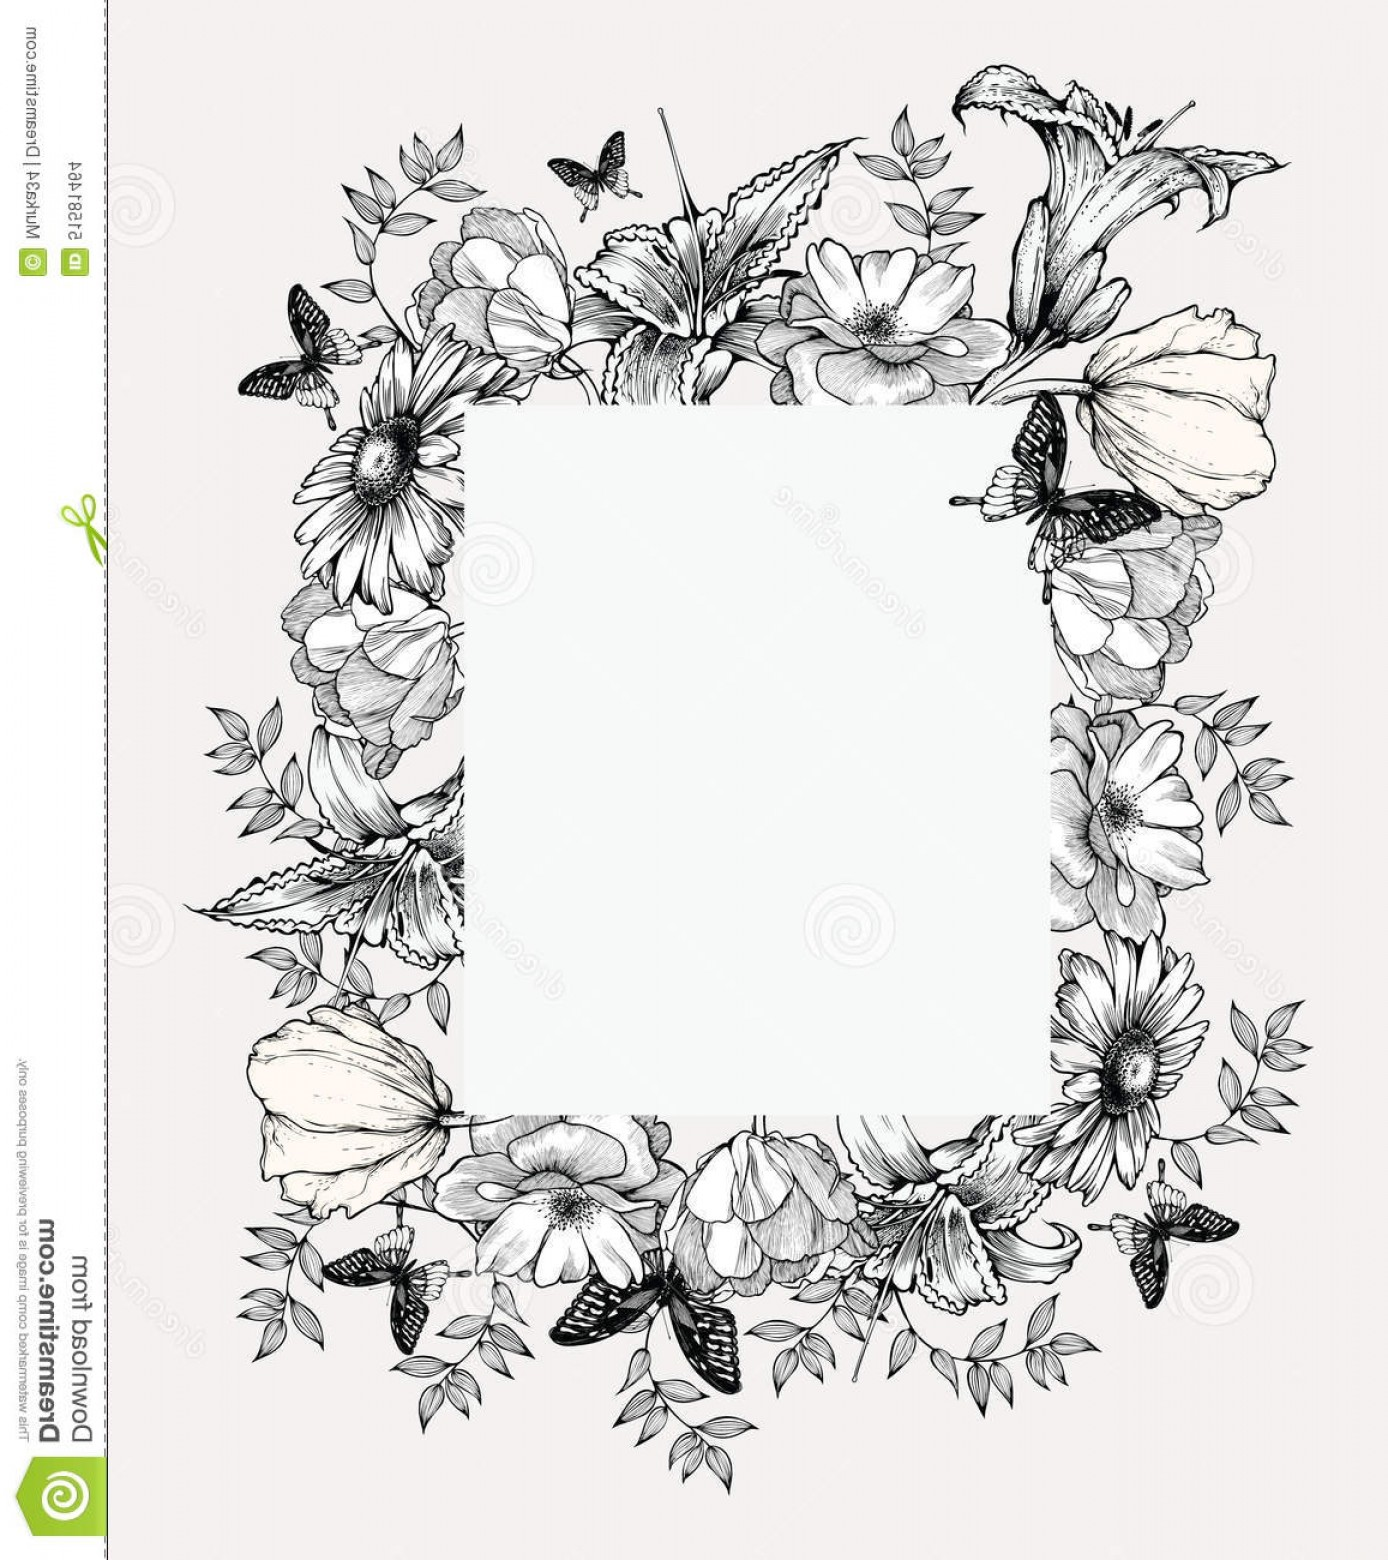 Stock Illustration Black White Vector Illustration Vintage Frame